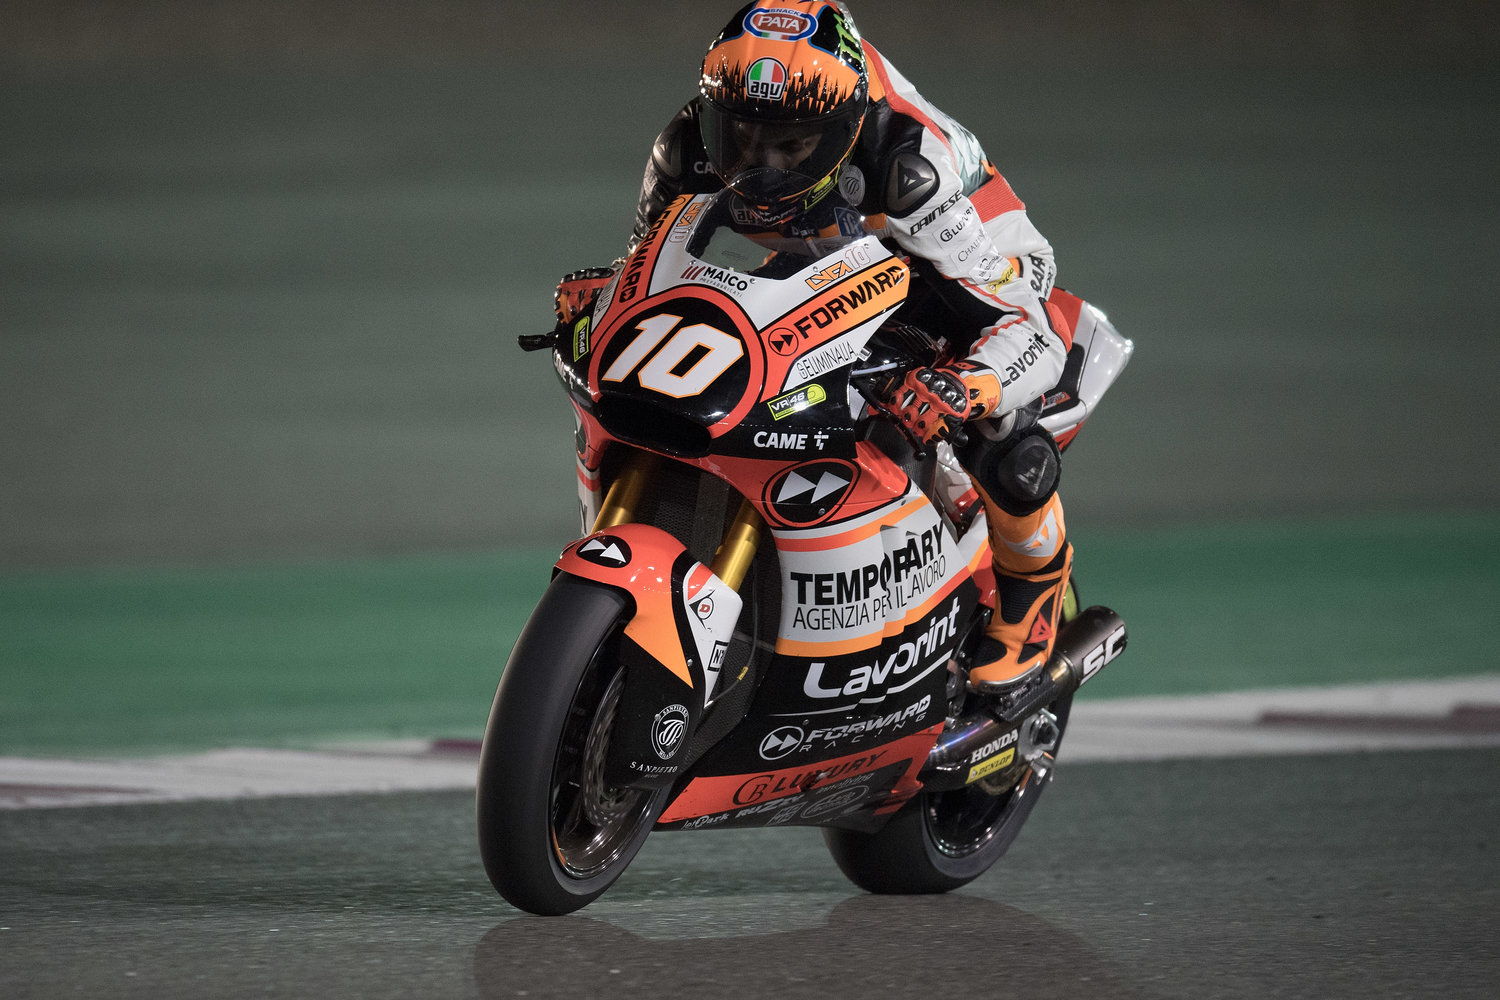 Forward Racing Team duo ready to conquer Argentina